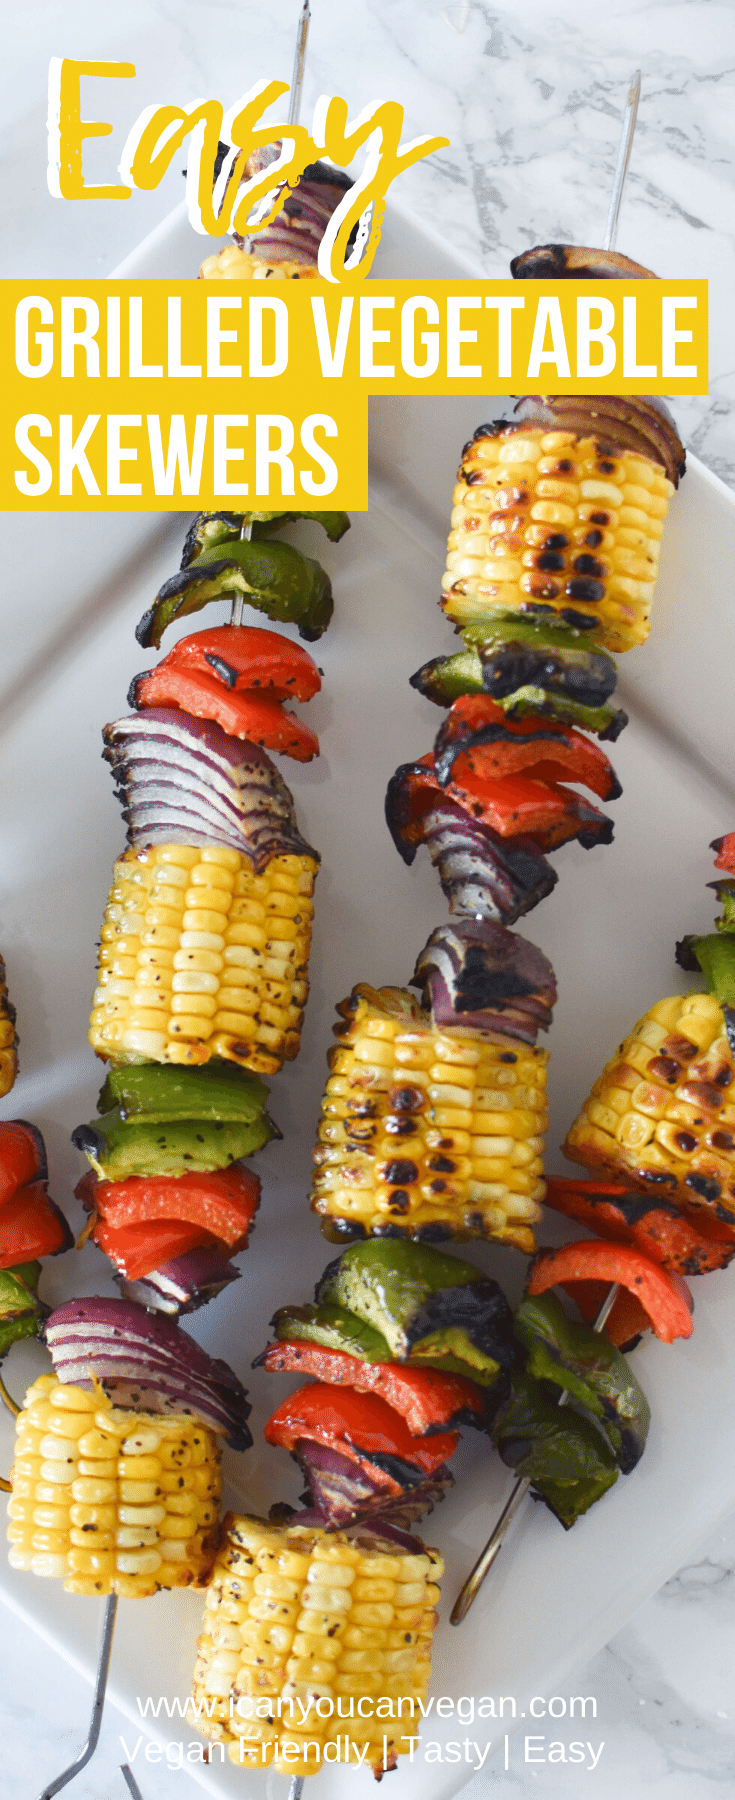 Grilled Vegetable Skewers Pinterest